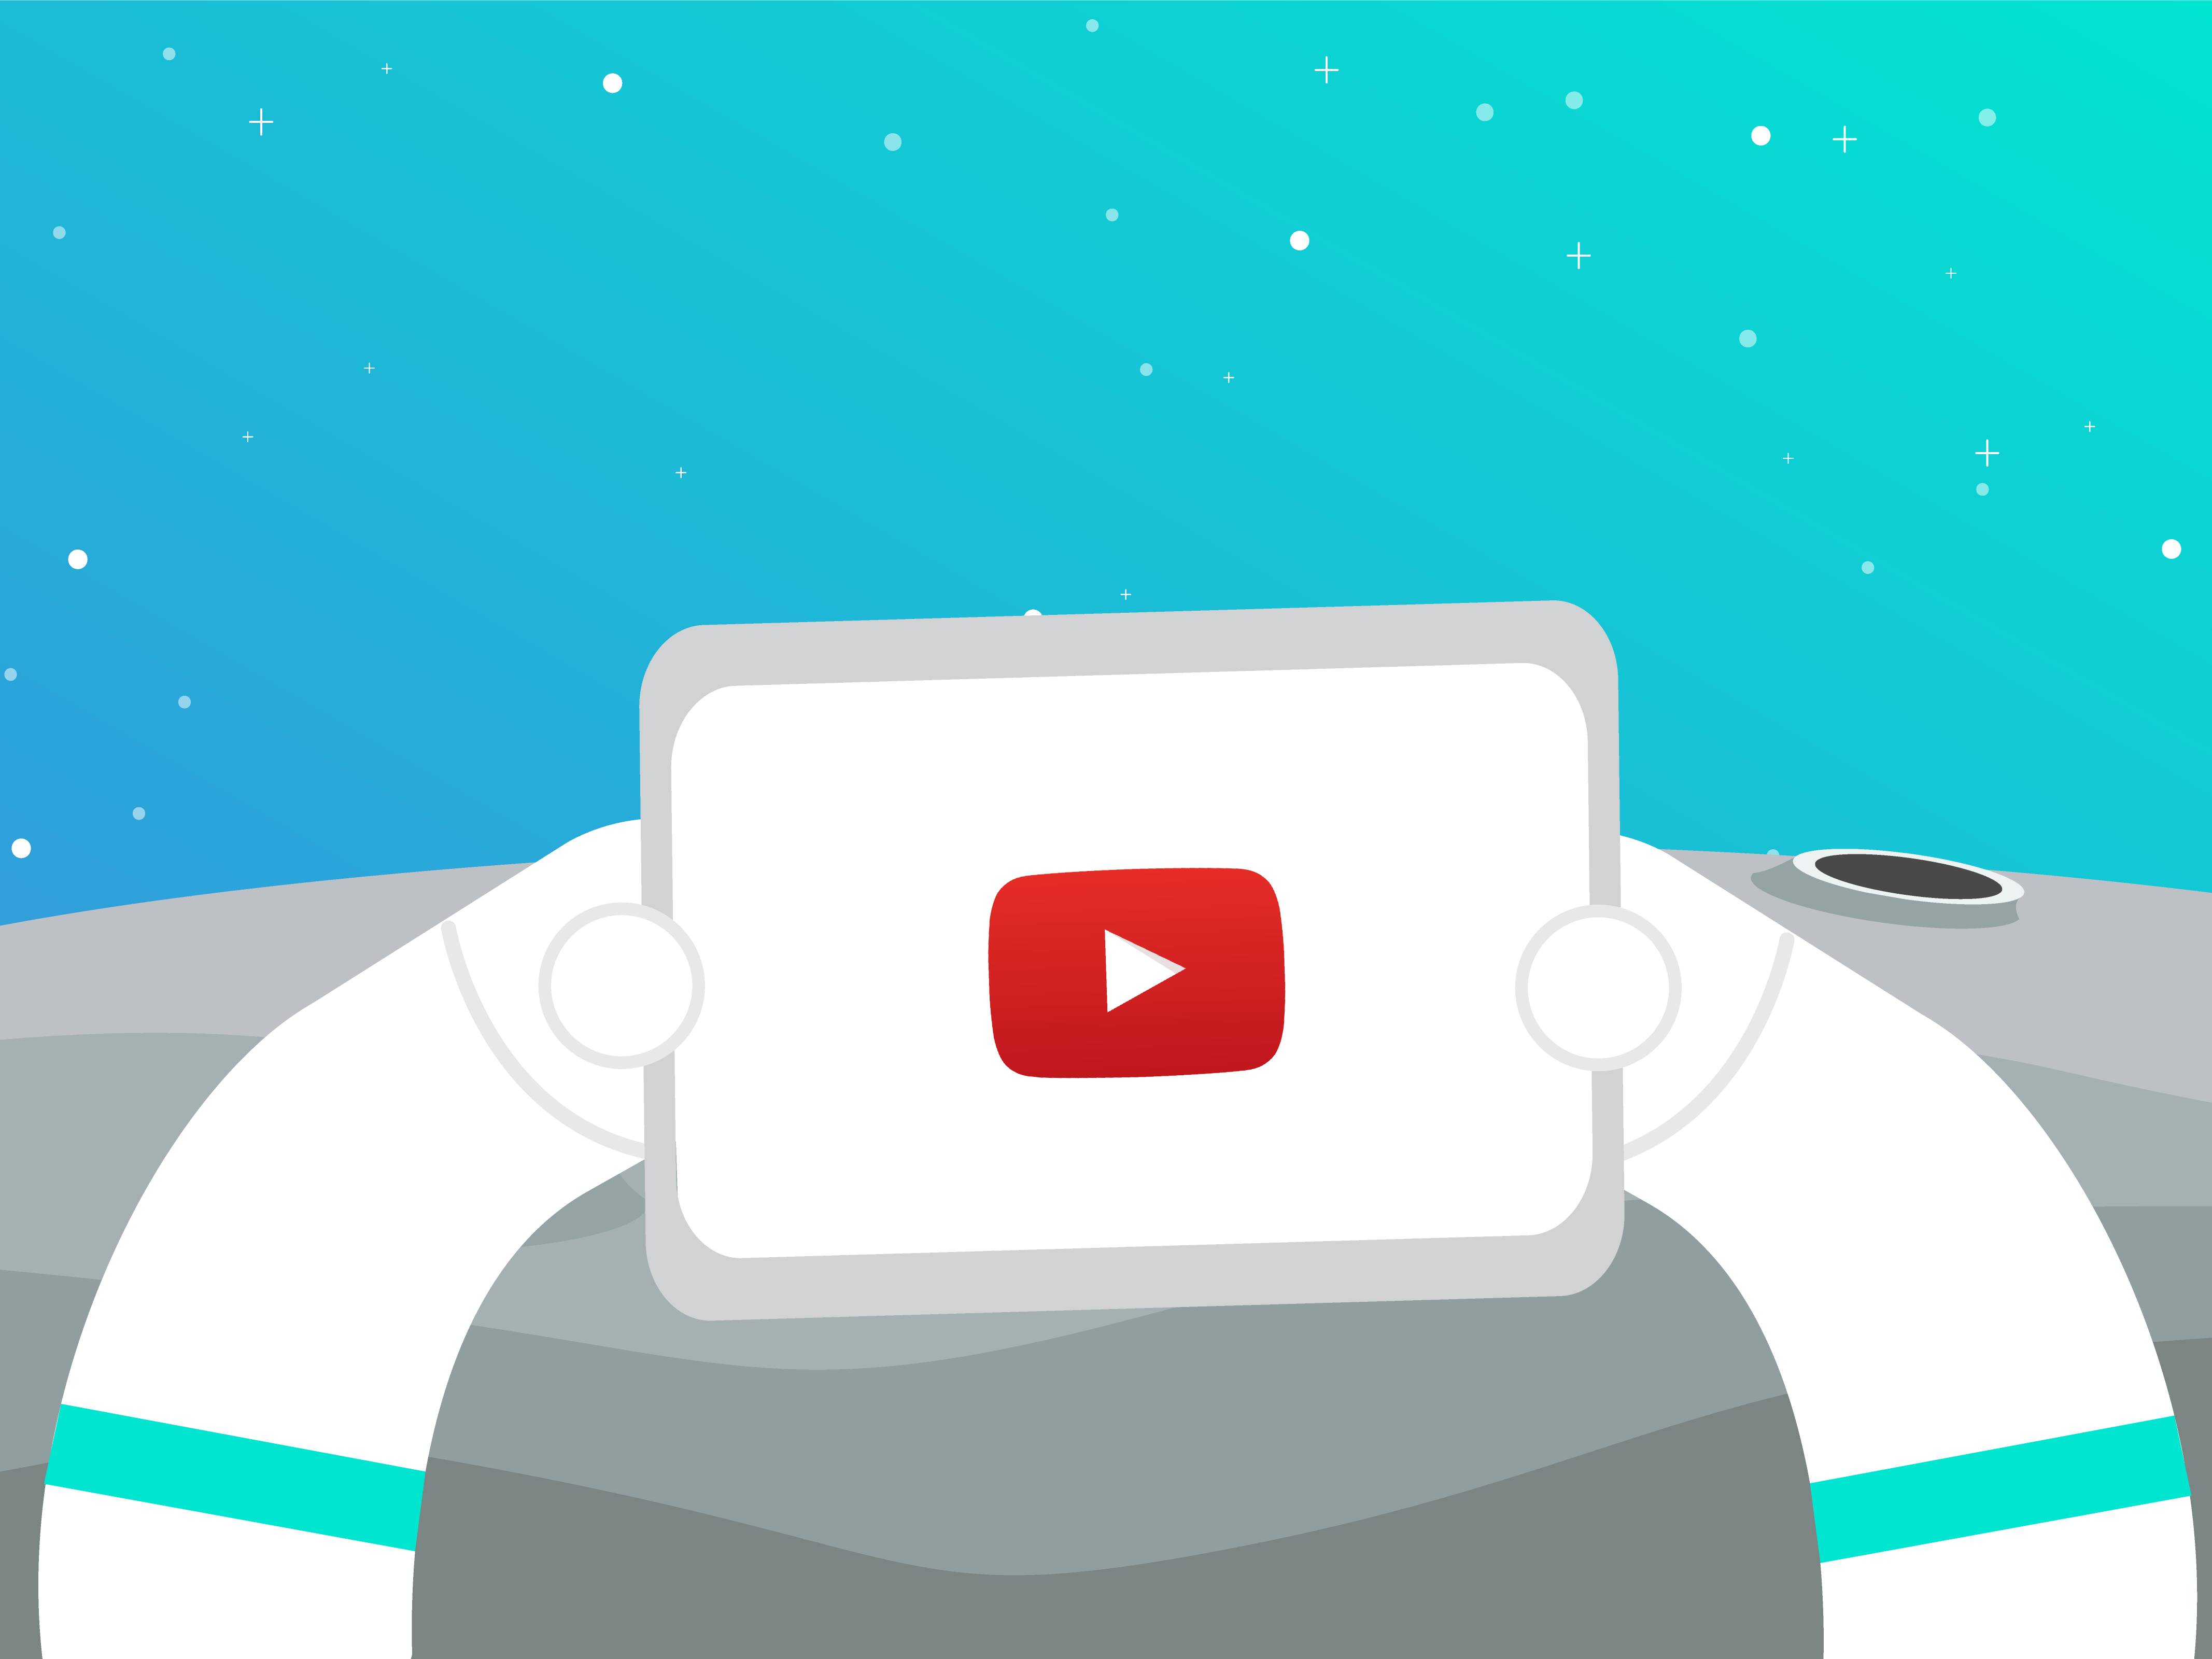 How to rank #1 on YouTube - YouTube SEO